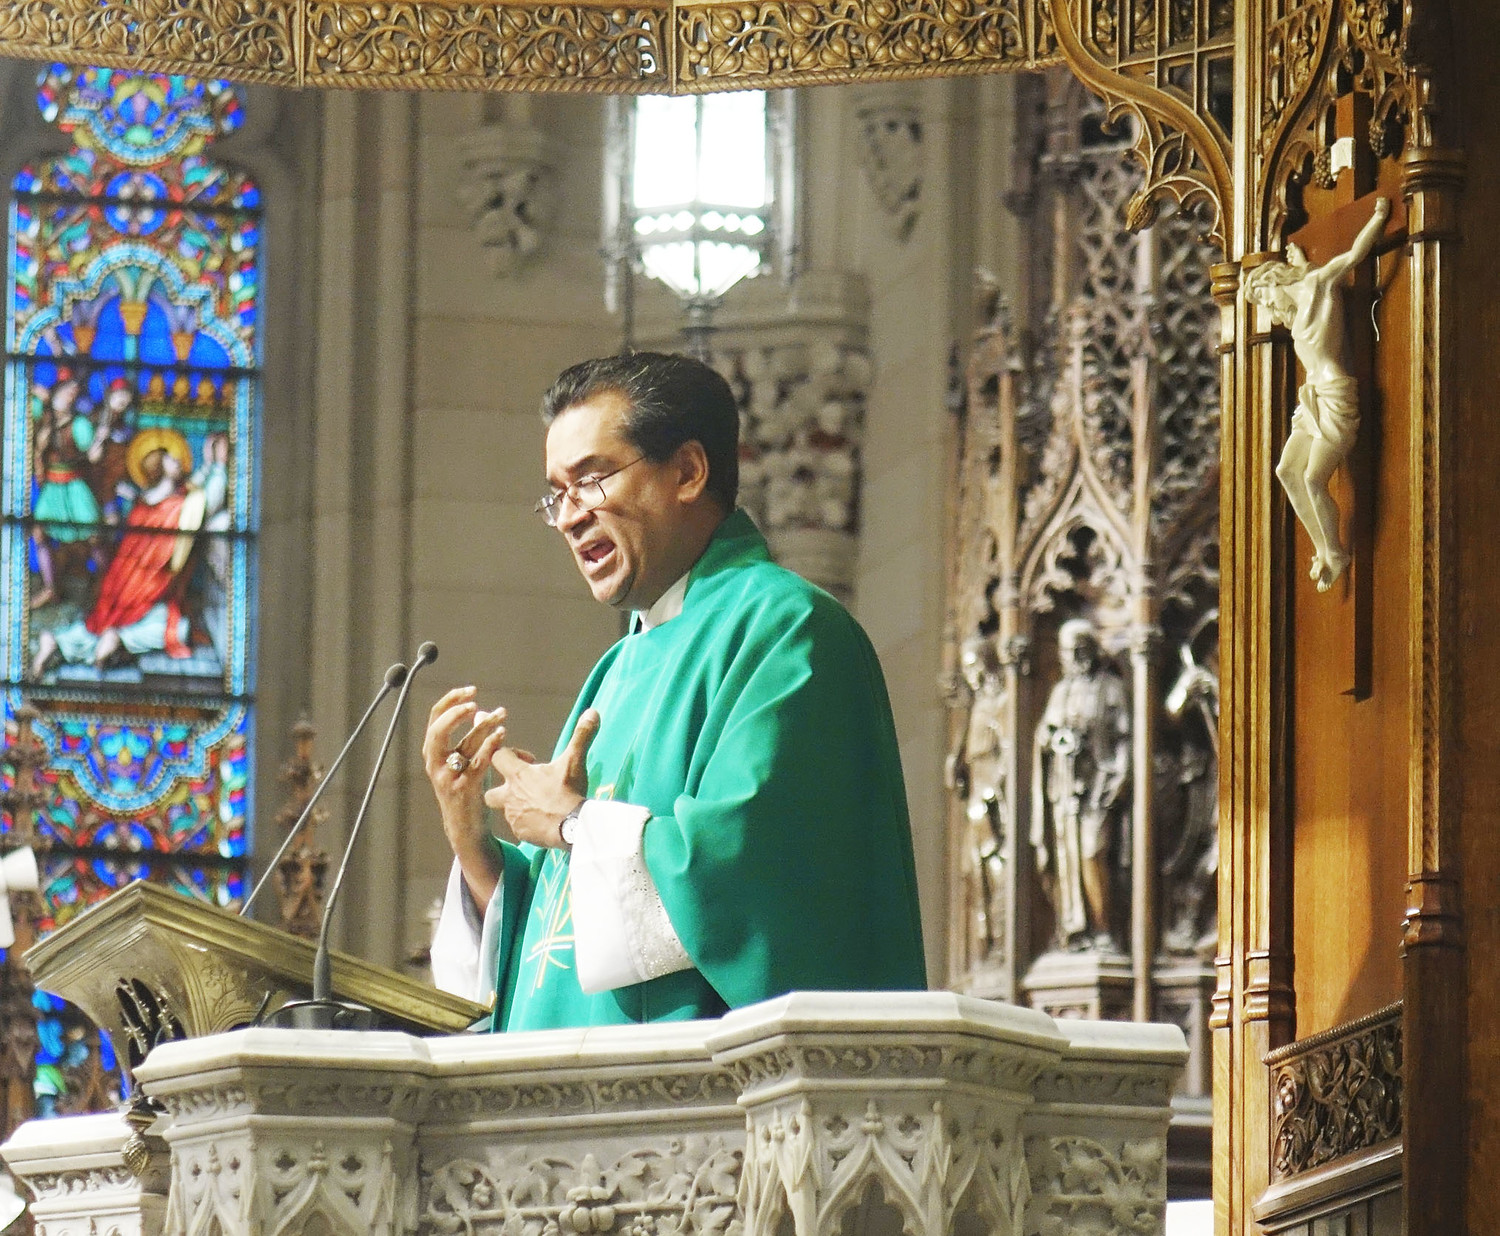 Father Eric Cruz, pastor of St. John Chrysostom parish in the Bronx and the director of Bronx Catholic Charities, preaches his homily. Father Cruz is a New Yorker of Puerto Rican descent.